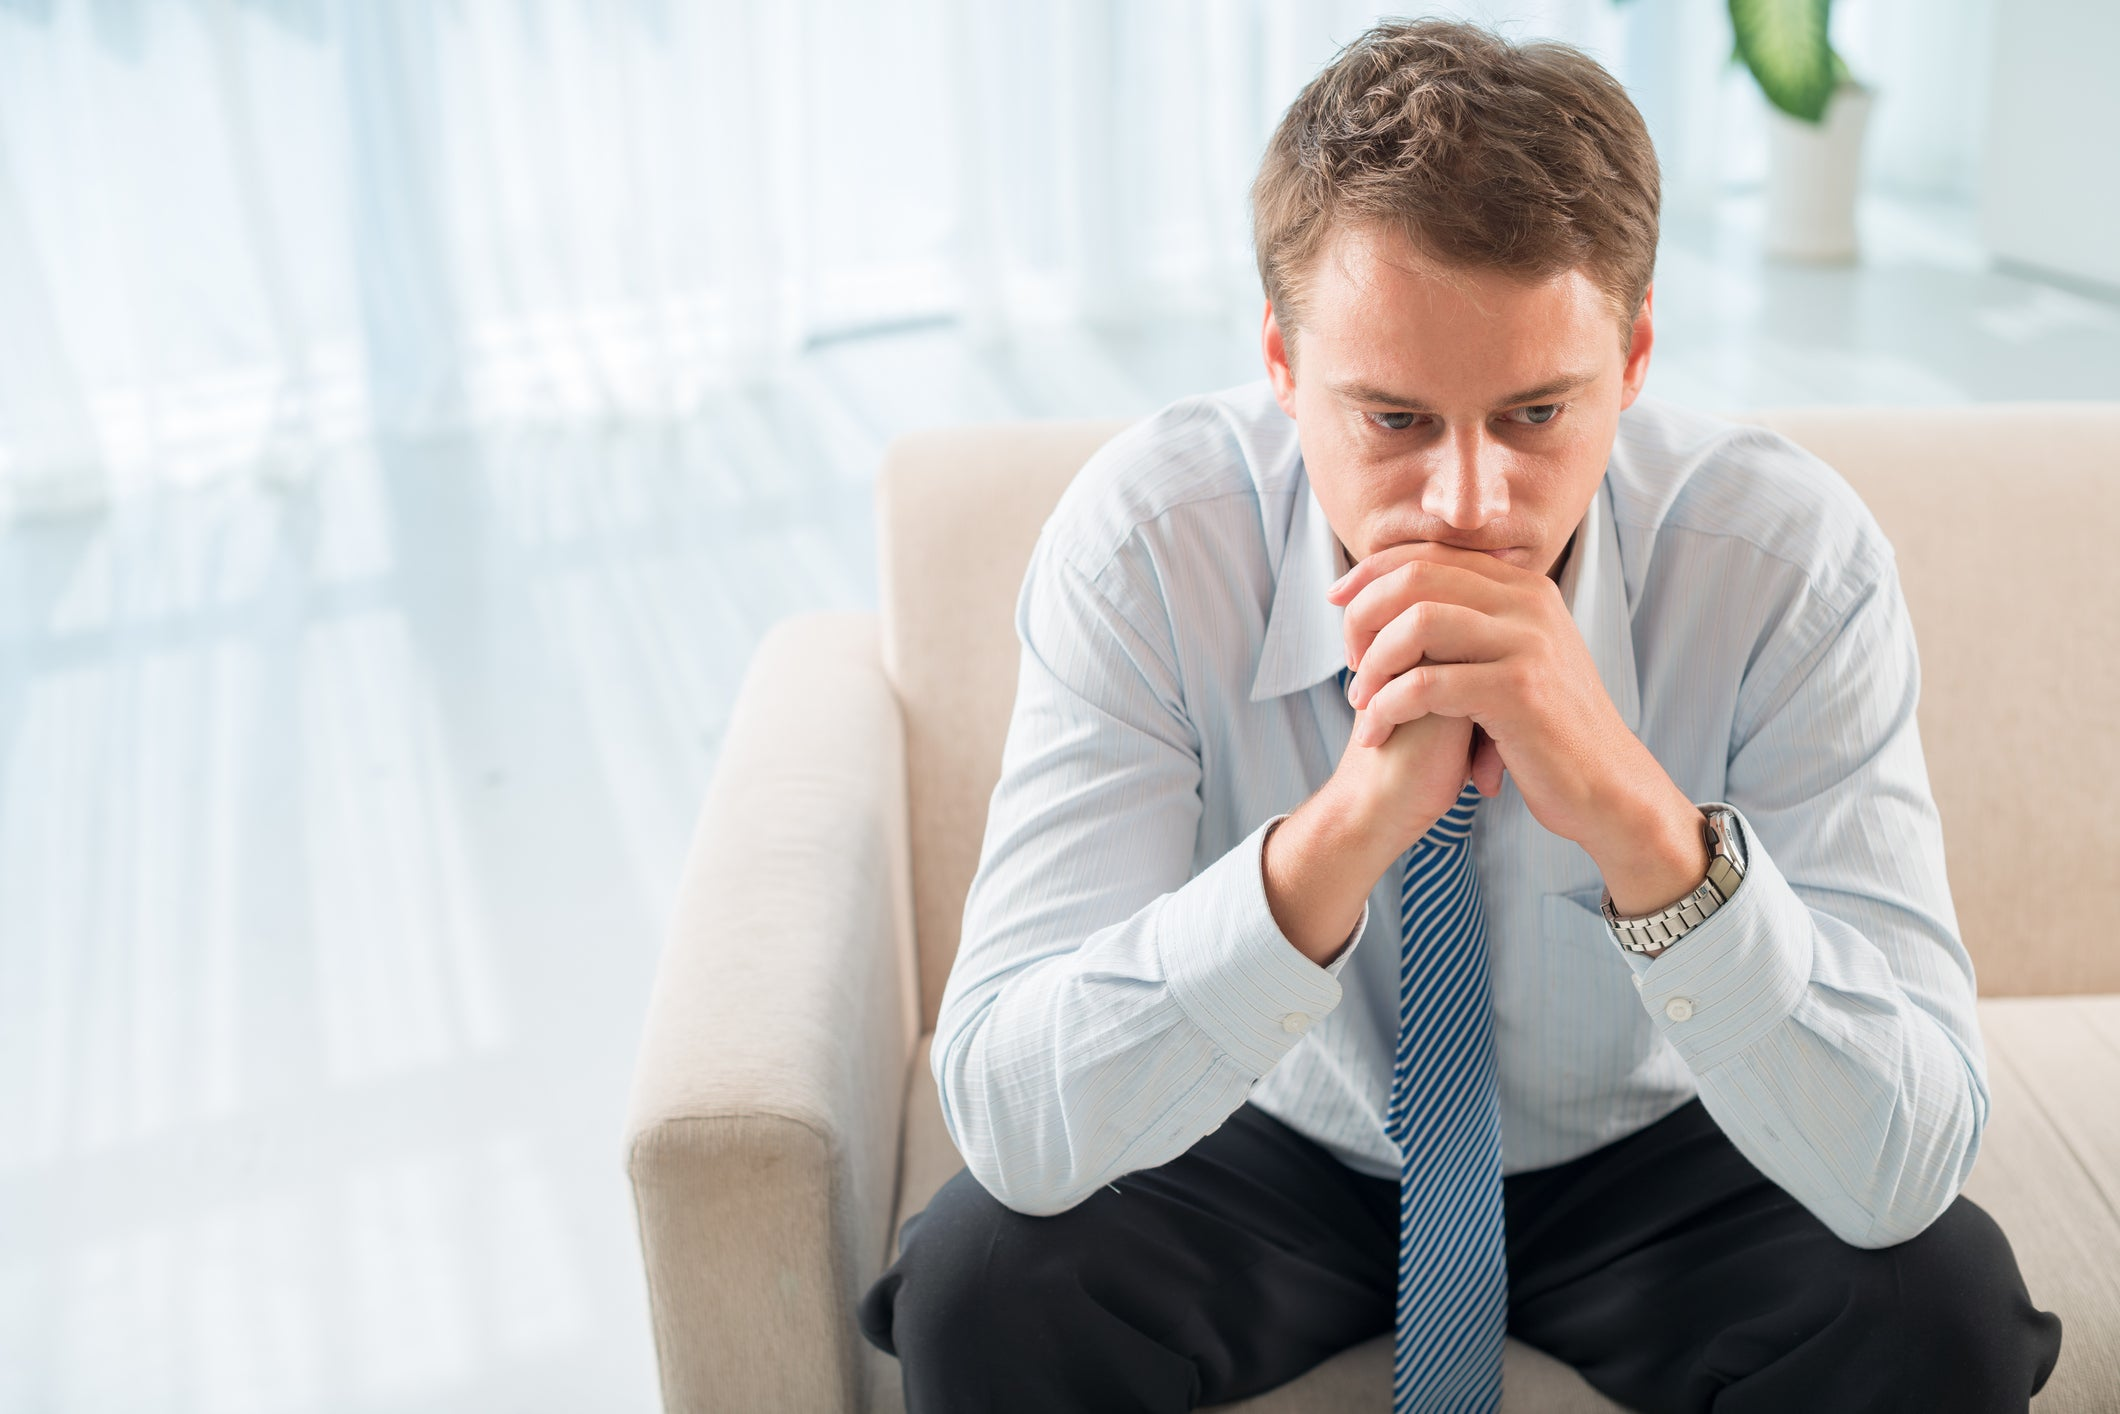 Man in dress shirt and tie sitting on couch, covering his mouth and chin with hands as if worried